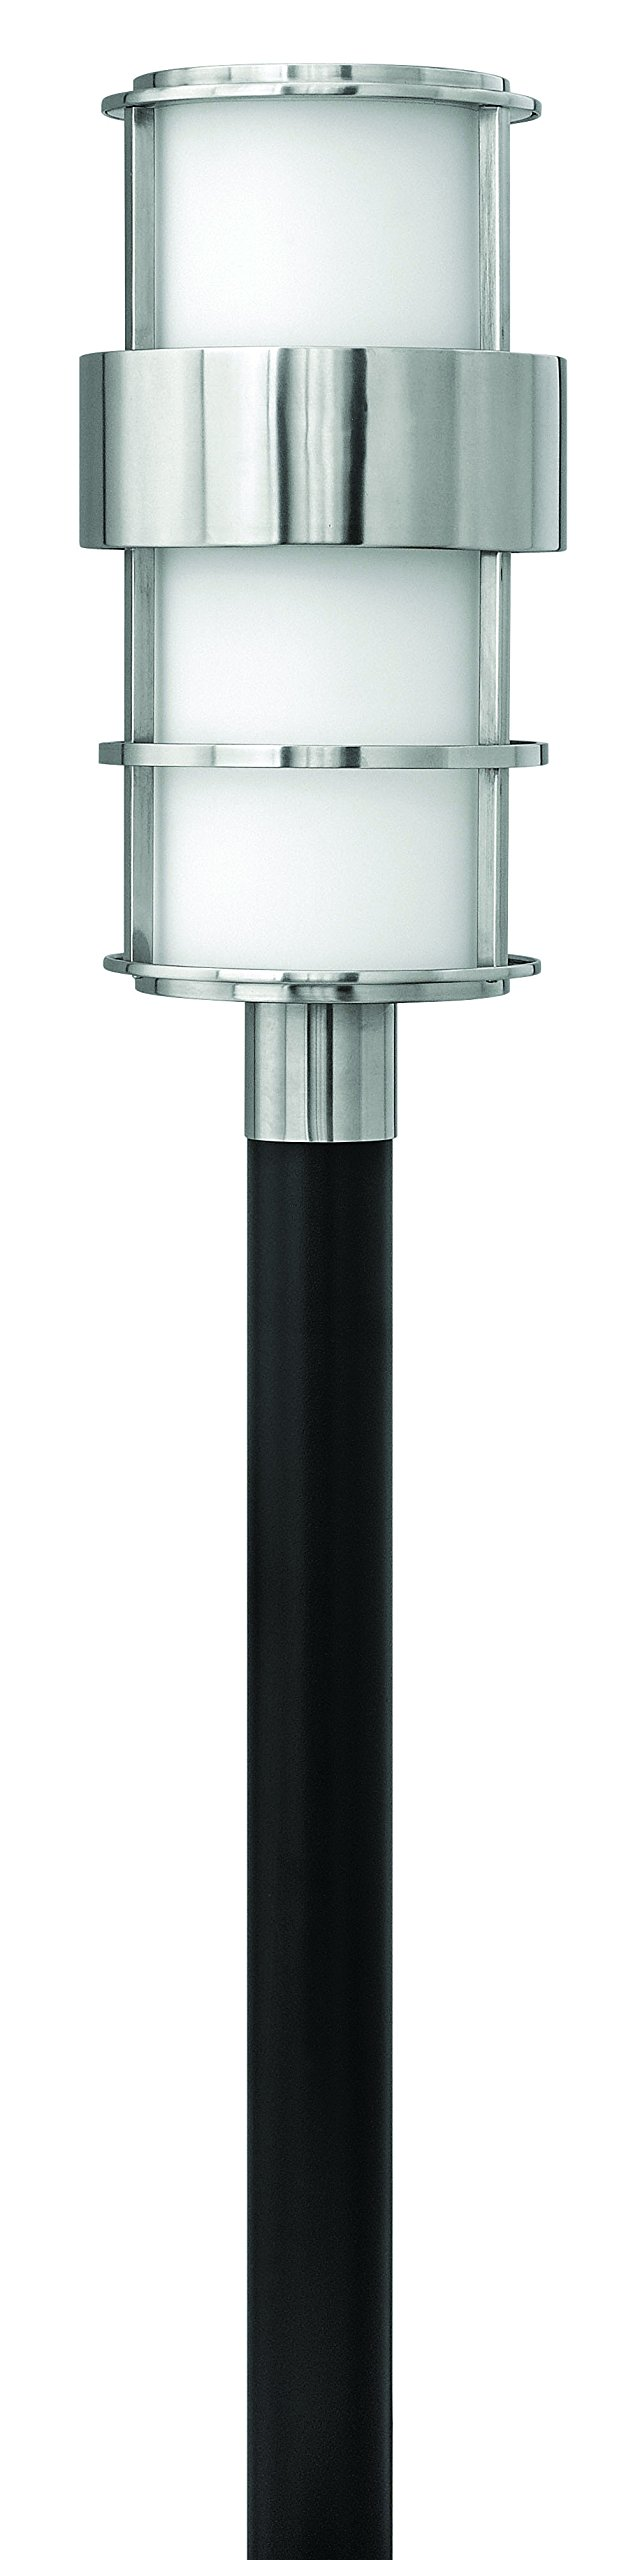 Hinkley 1901SS Contemporary Modern One Light Post Top/ Pier Mount from Saturn collection in Pwt, Nckl, B/S, Slvr.finish,